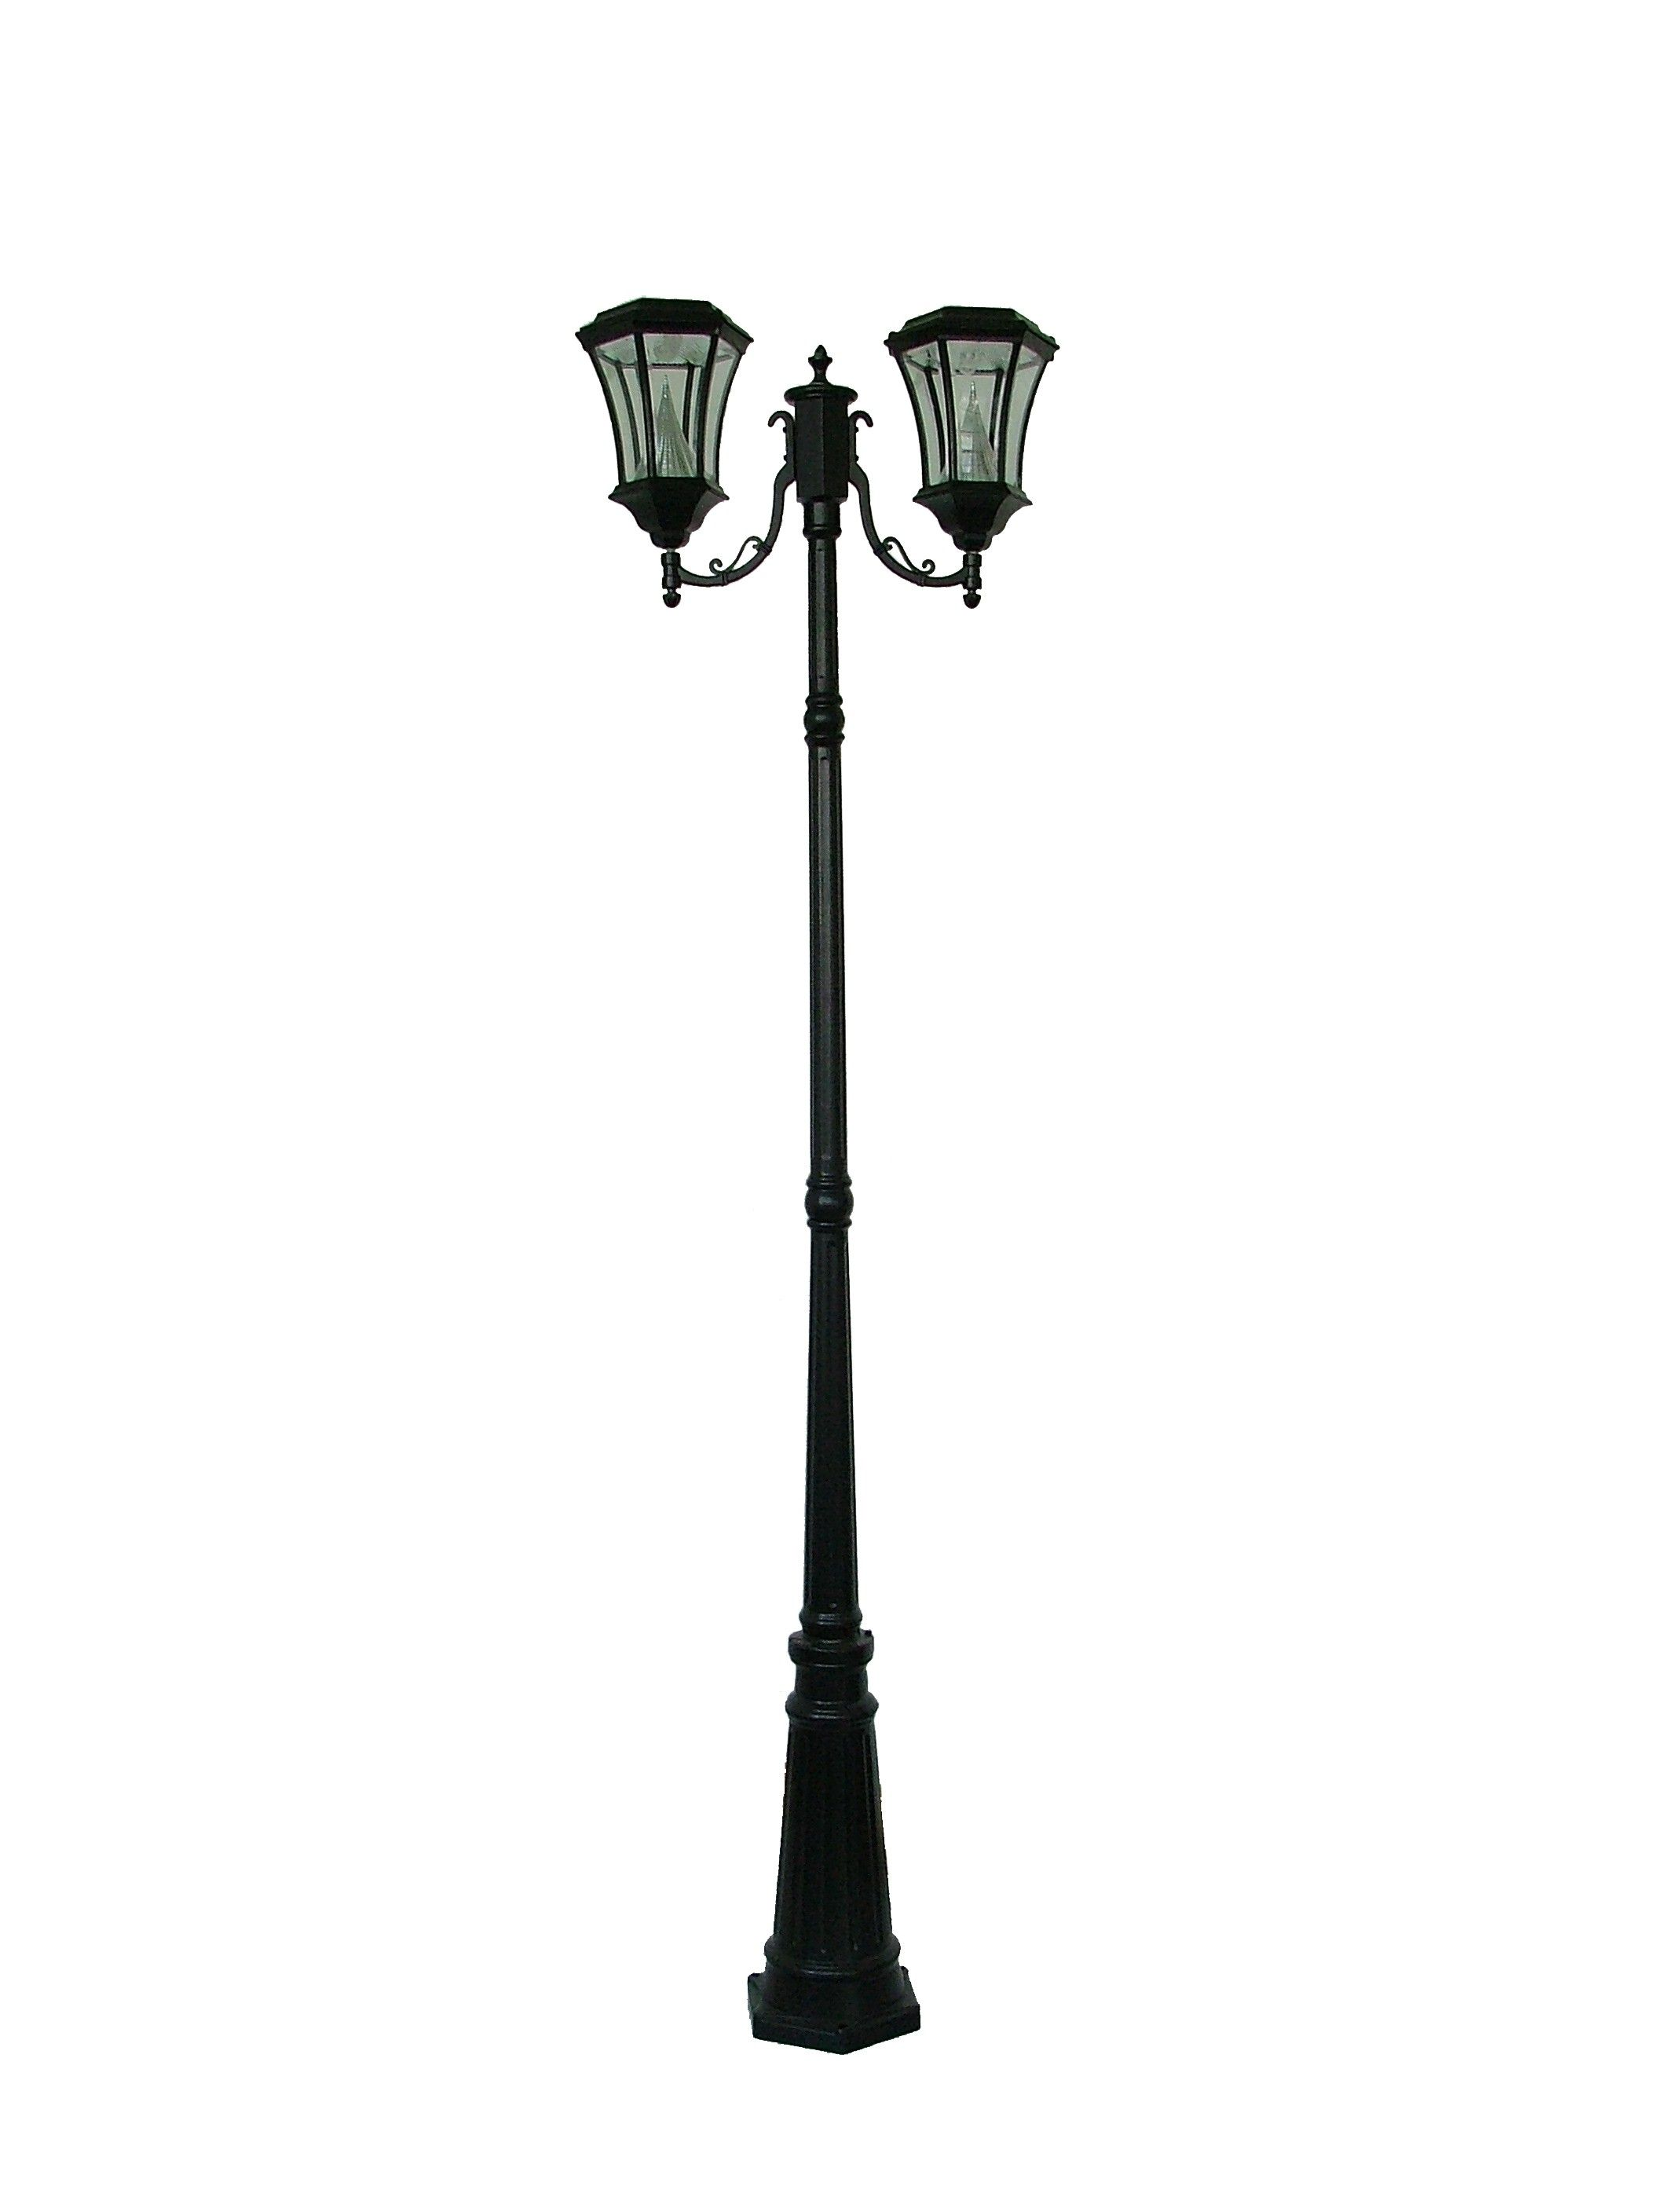 Solar Lamp Post Comes In Triple Or Single As Well Our 7 High Solar Powered Traditional Styled Lamp Posts Are In High De Solar Lamp Post Solar Lamp Lamp Post